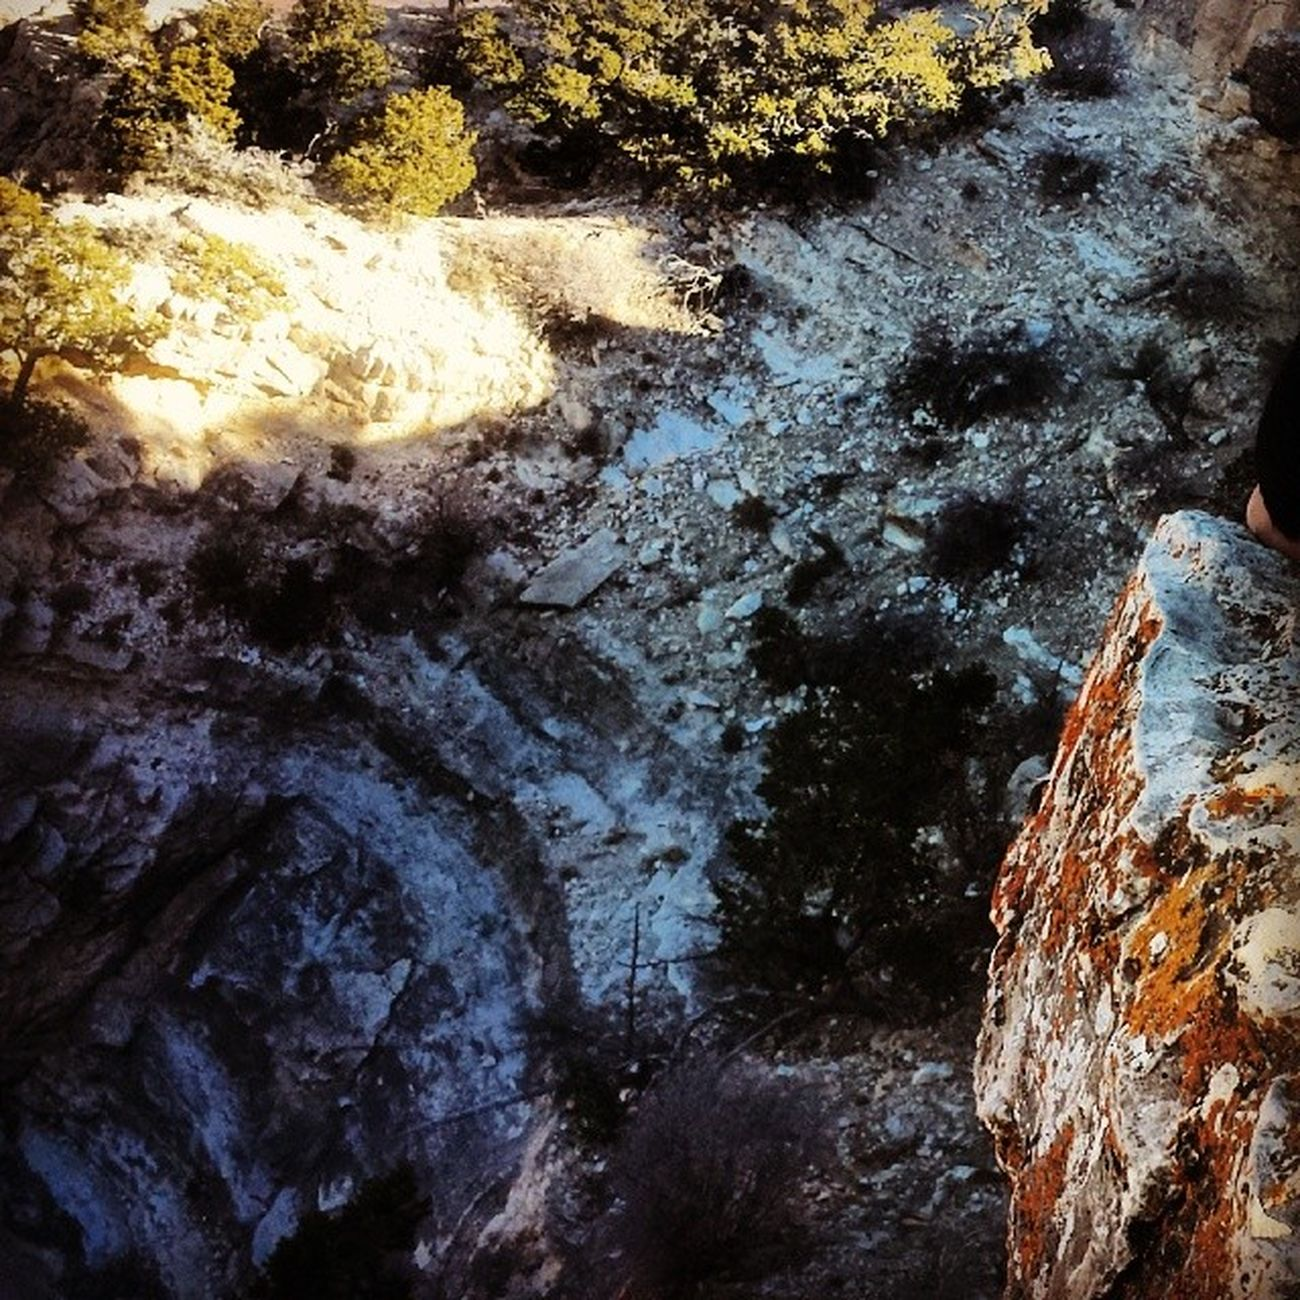 Ty on a ledge pt. 2 Roadtrip Couplesweekend Mountains Canyon coloradoriver tyler tk boof hole ledge cliff fallingoffcliff falling slipping grandcanyonvillage canyon rocks trees